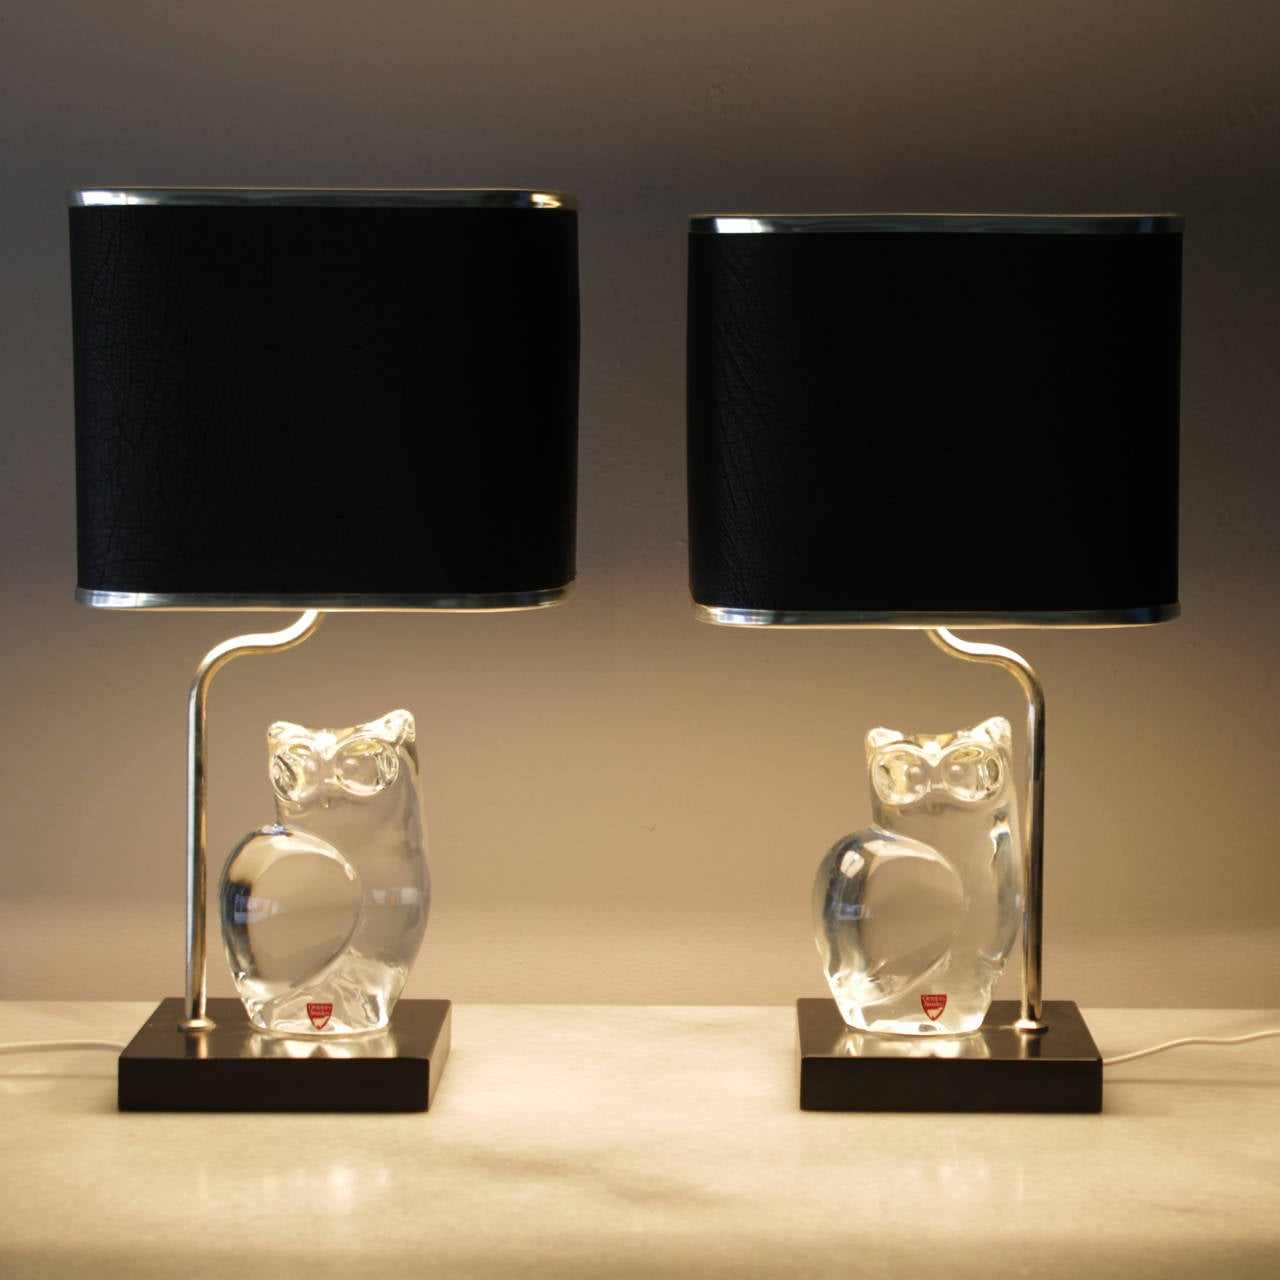 Pair of Crystal Lamps by Olle Alberius for Orrefors For Sale 3